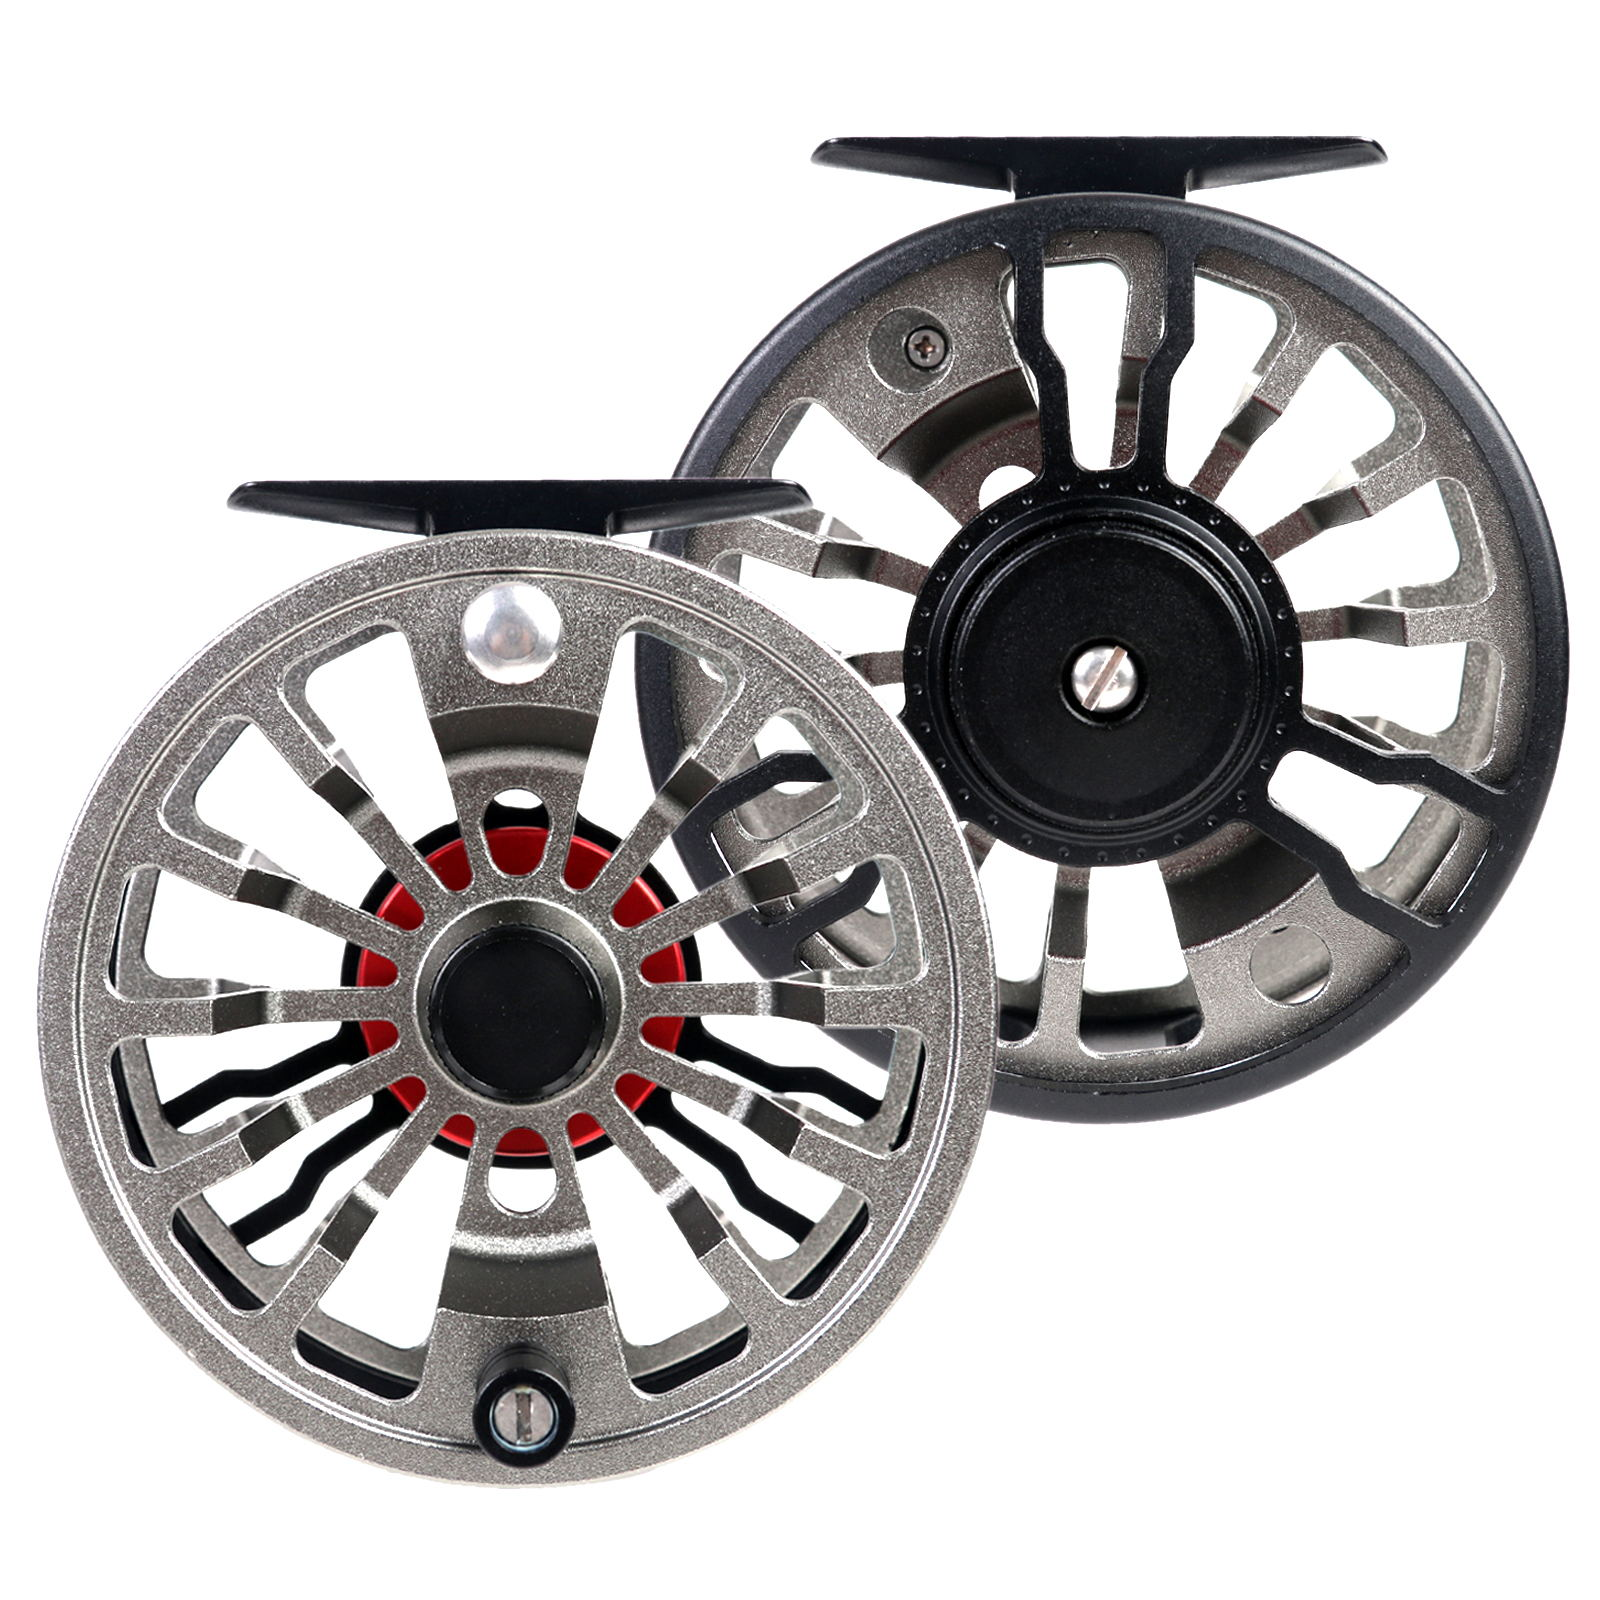 X-Ceed Fly Fishing Reel 3/4/5/6/7/8WT CNC Machined Aluminium Alloy Fly Reel Right Left Handed Reel and Spool